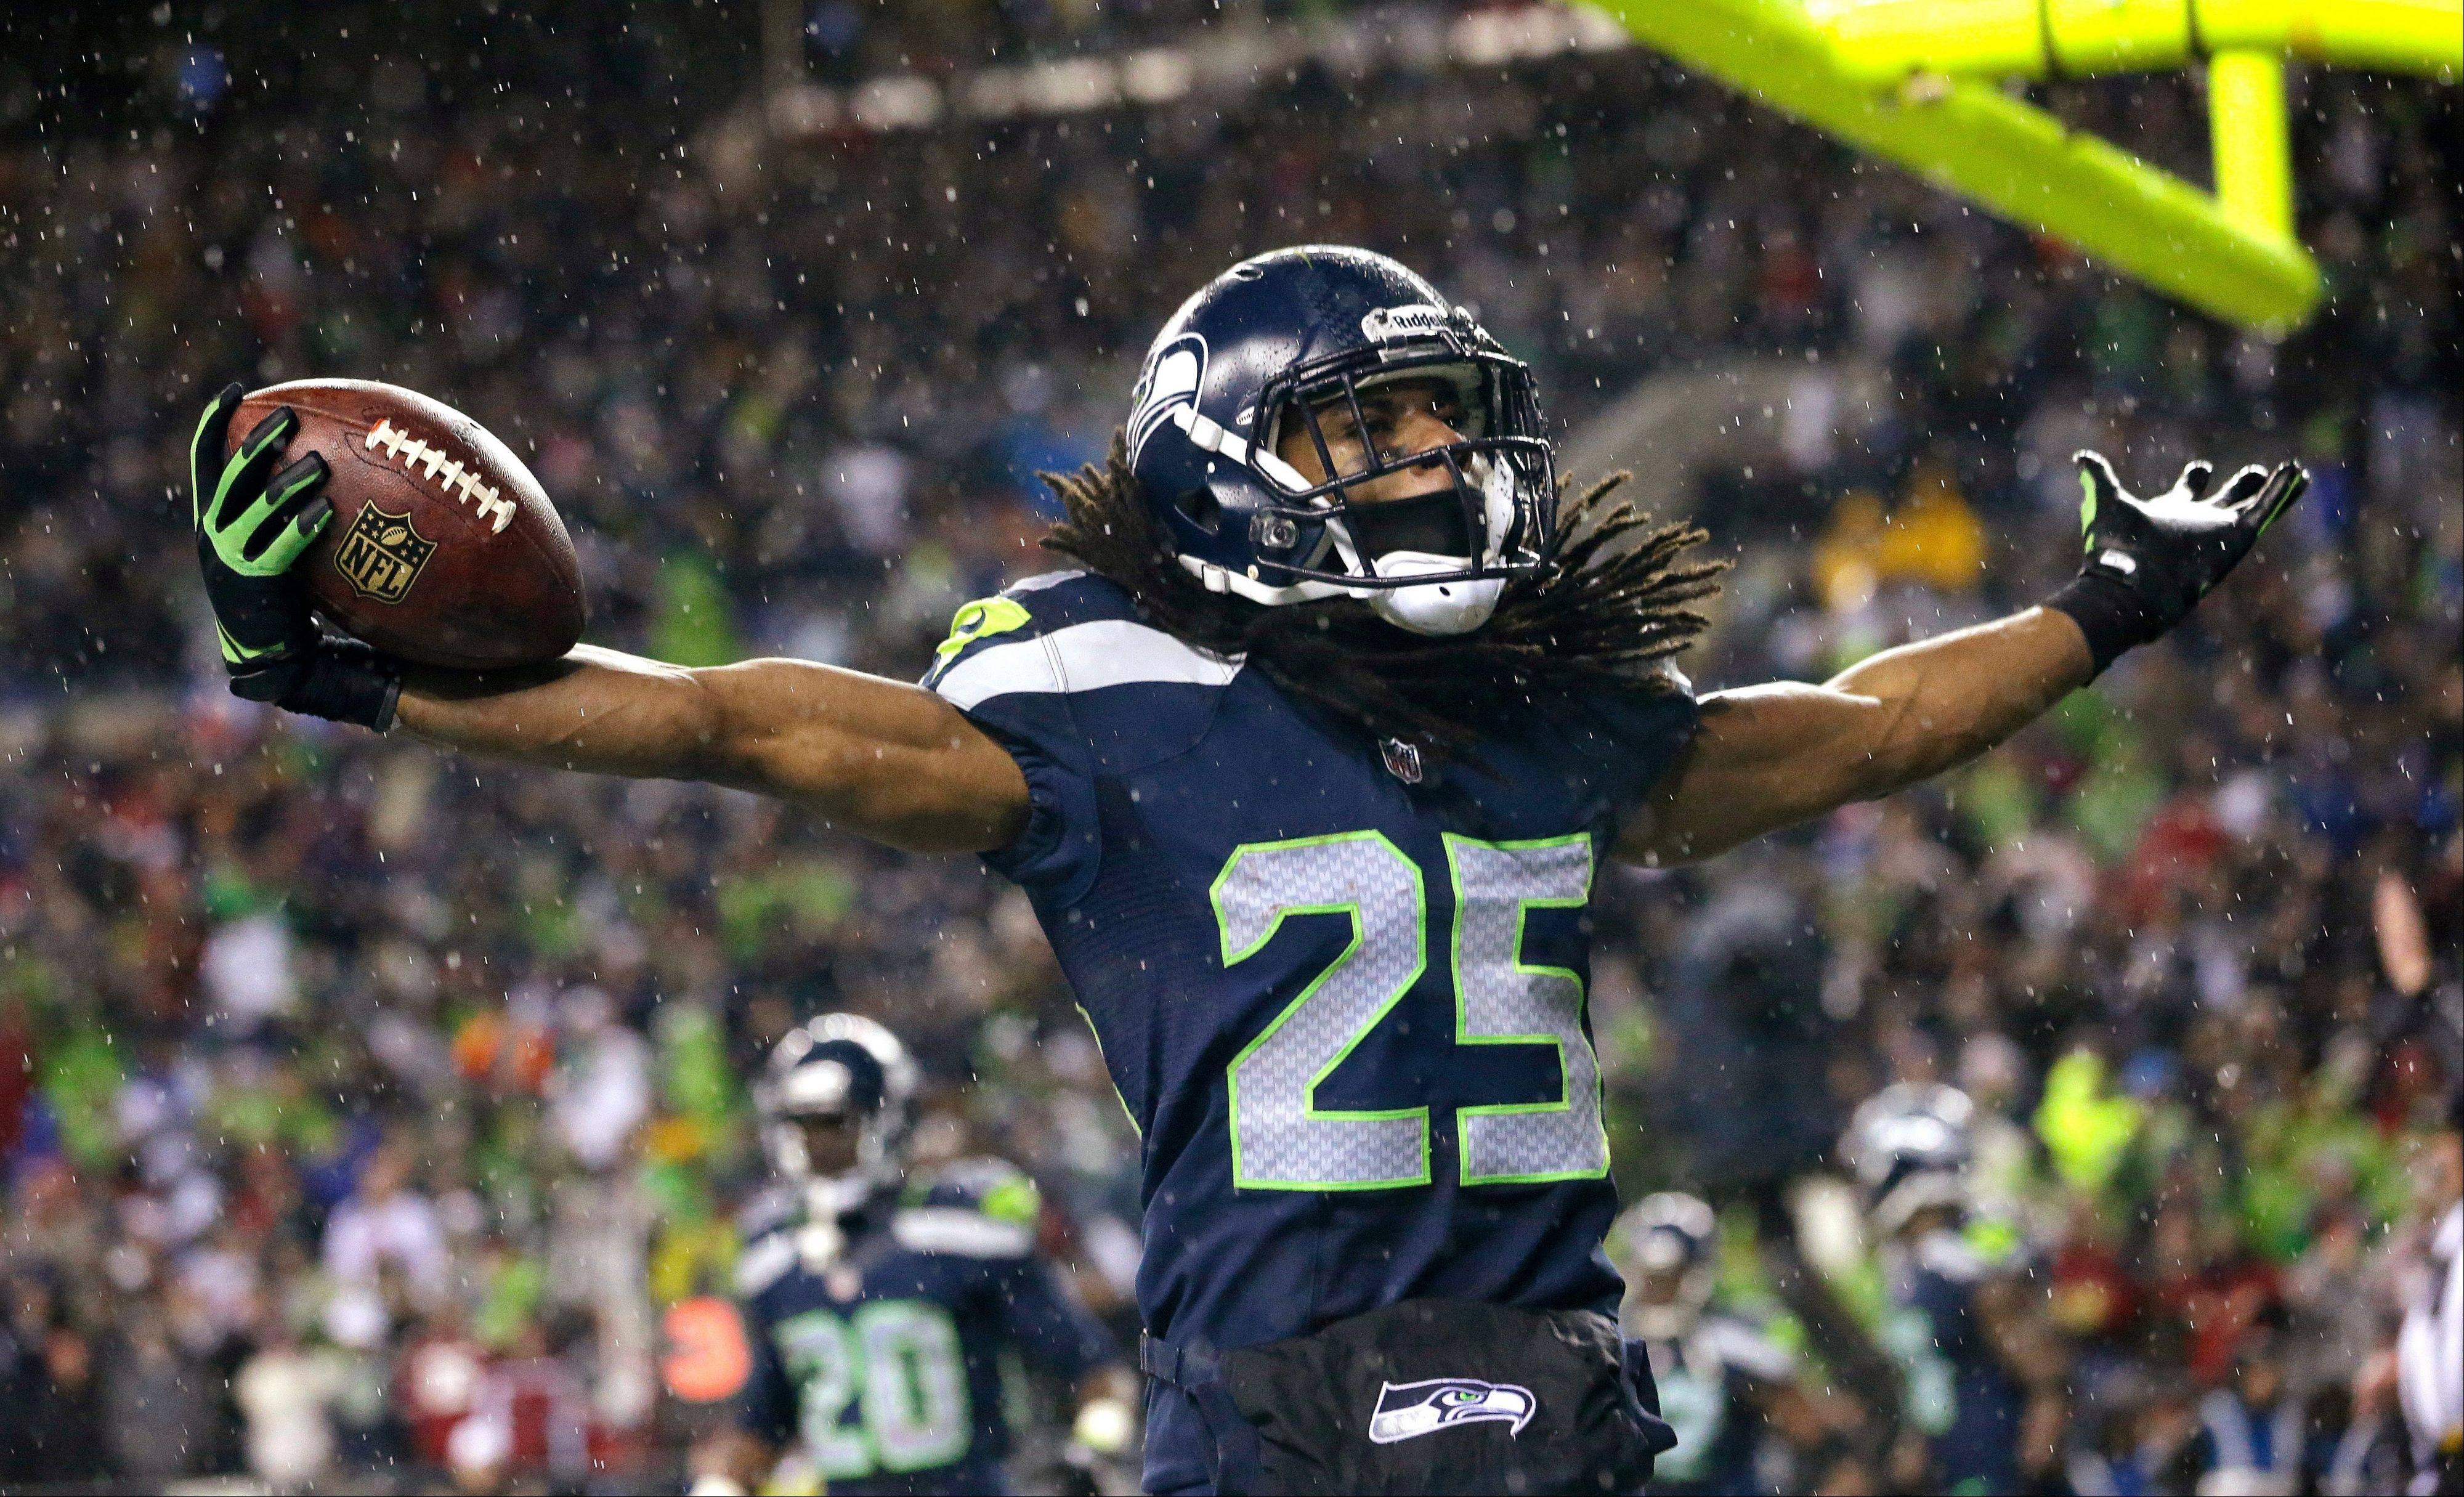 Seattle Seahawks' Richard Sherman is eligible for the NFL playoffs after winning an appeal of a four-game suspension the league gave him earlier this season.